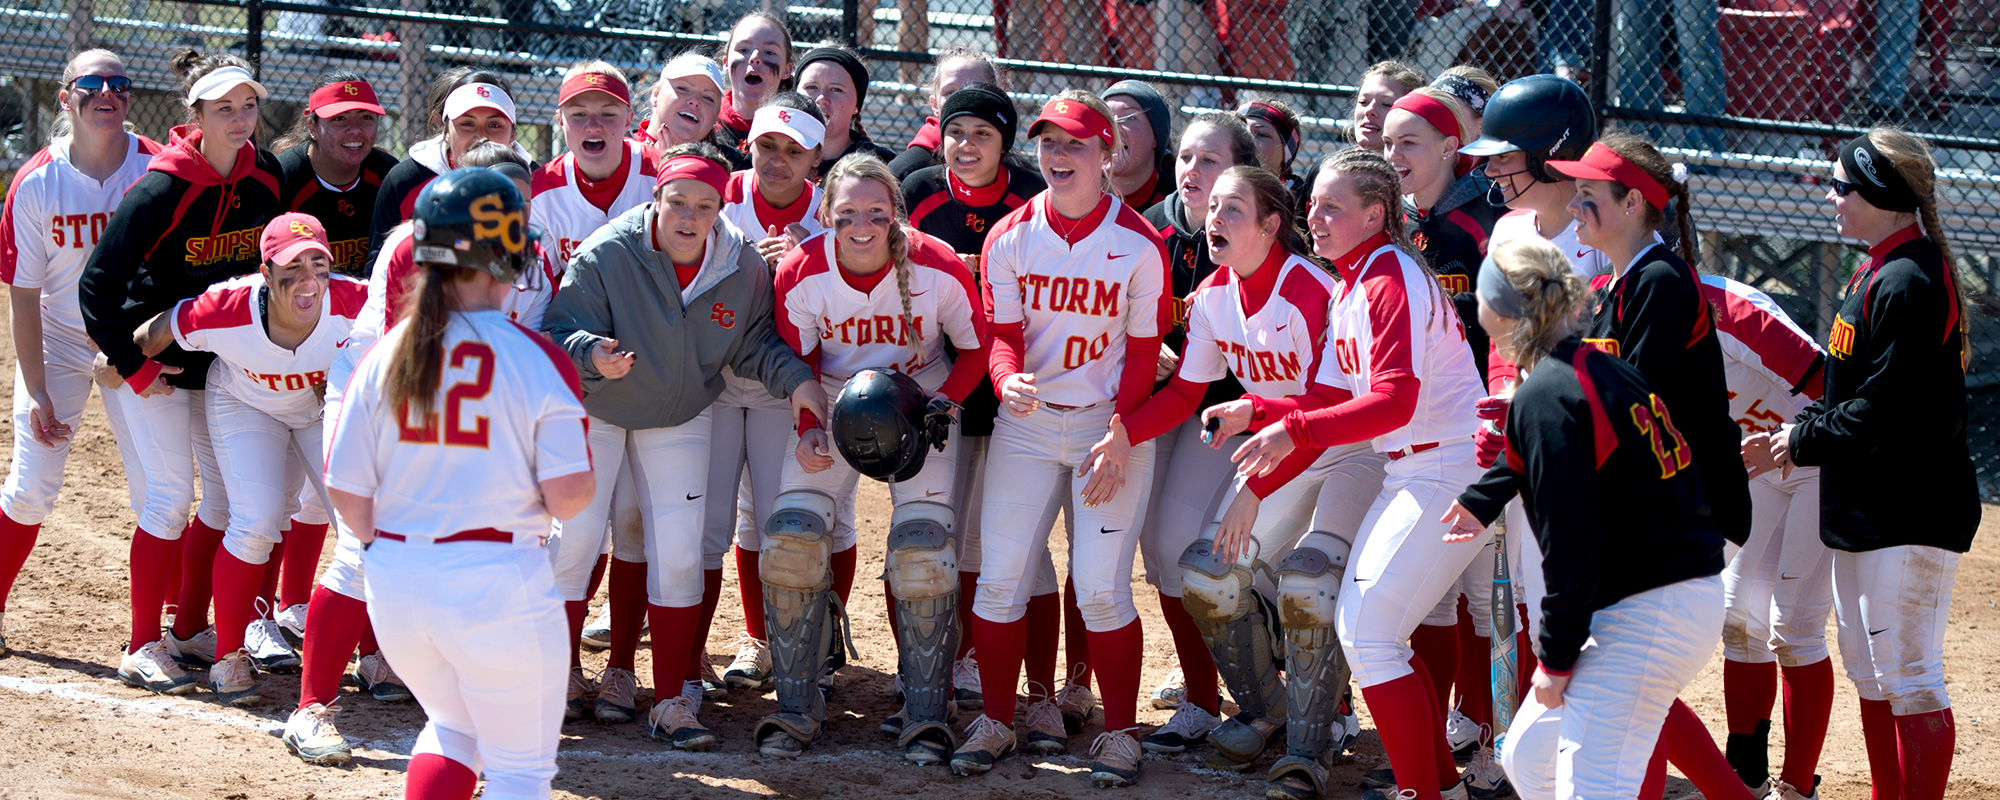 Sara Trent had two home runs on Saturday for the Storm.